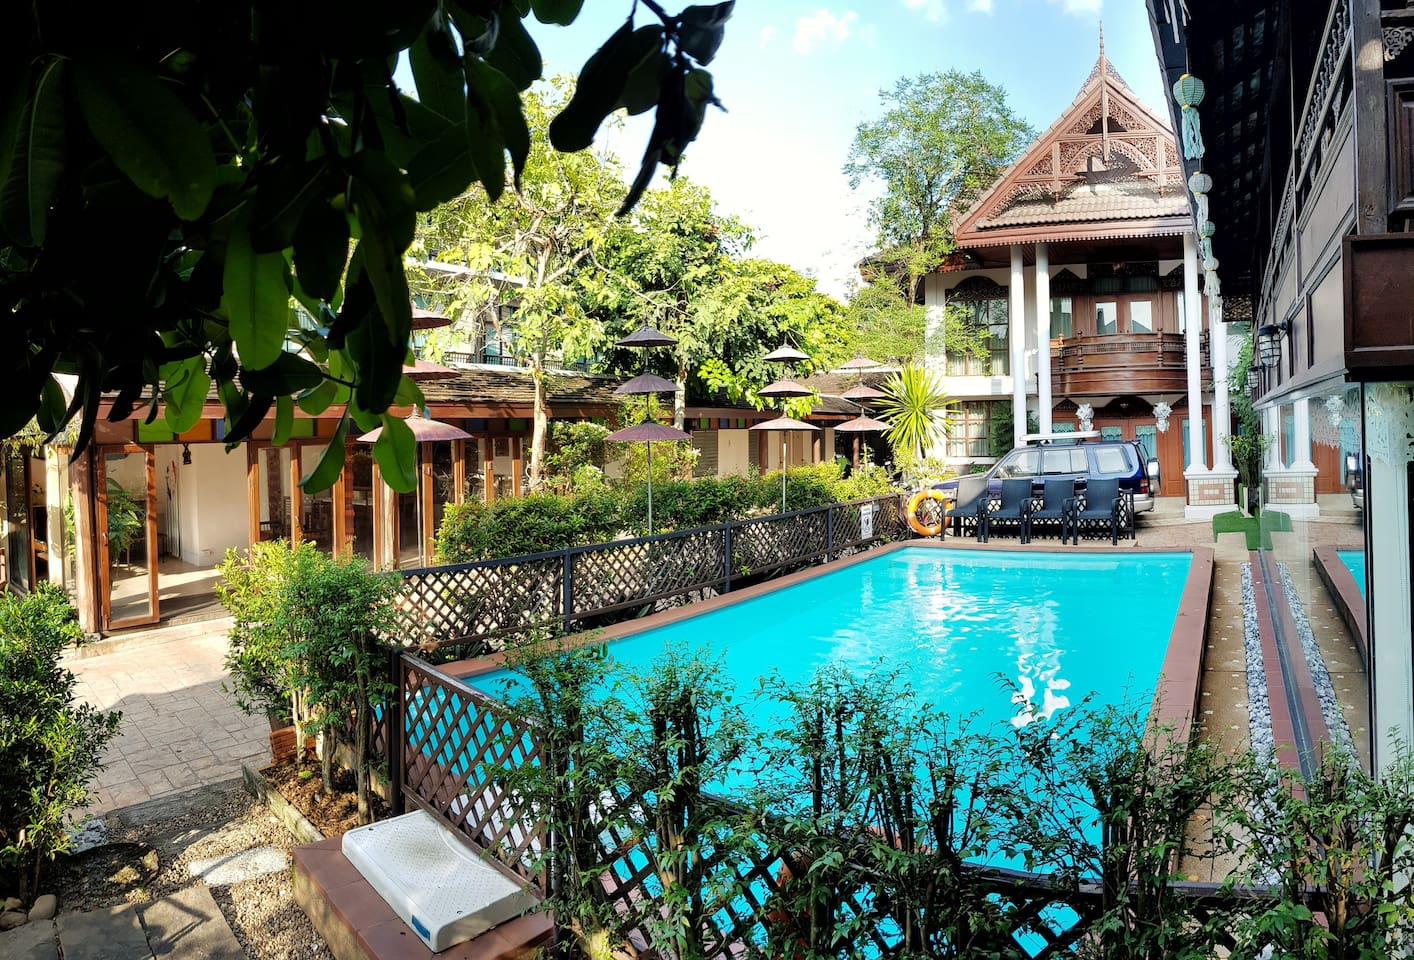 Peacefully located in the heart of Chiang Mai old town, Pha-Thai House offers an accommodations with gardens and an outdoor swimming pool. Free WiFi is available throughout the property. It is a 5-minute walk from Chiang Mai Gate and a night market.